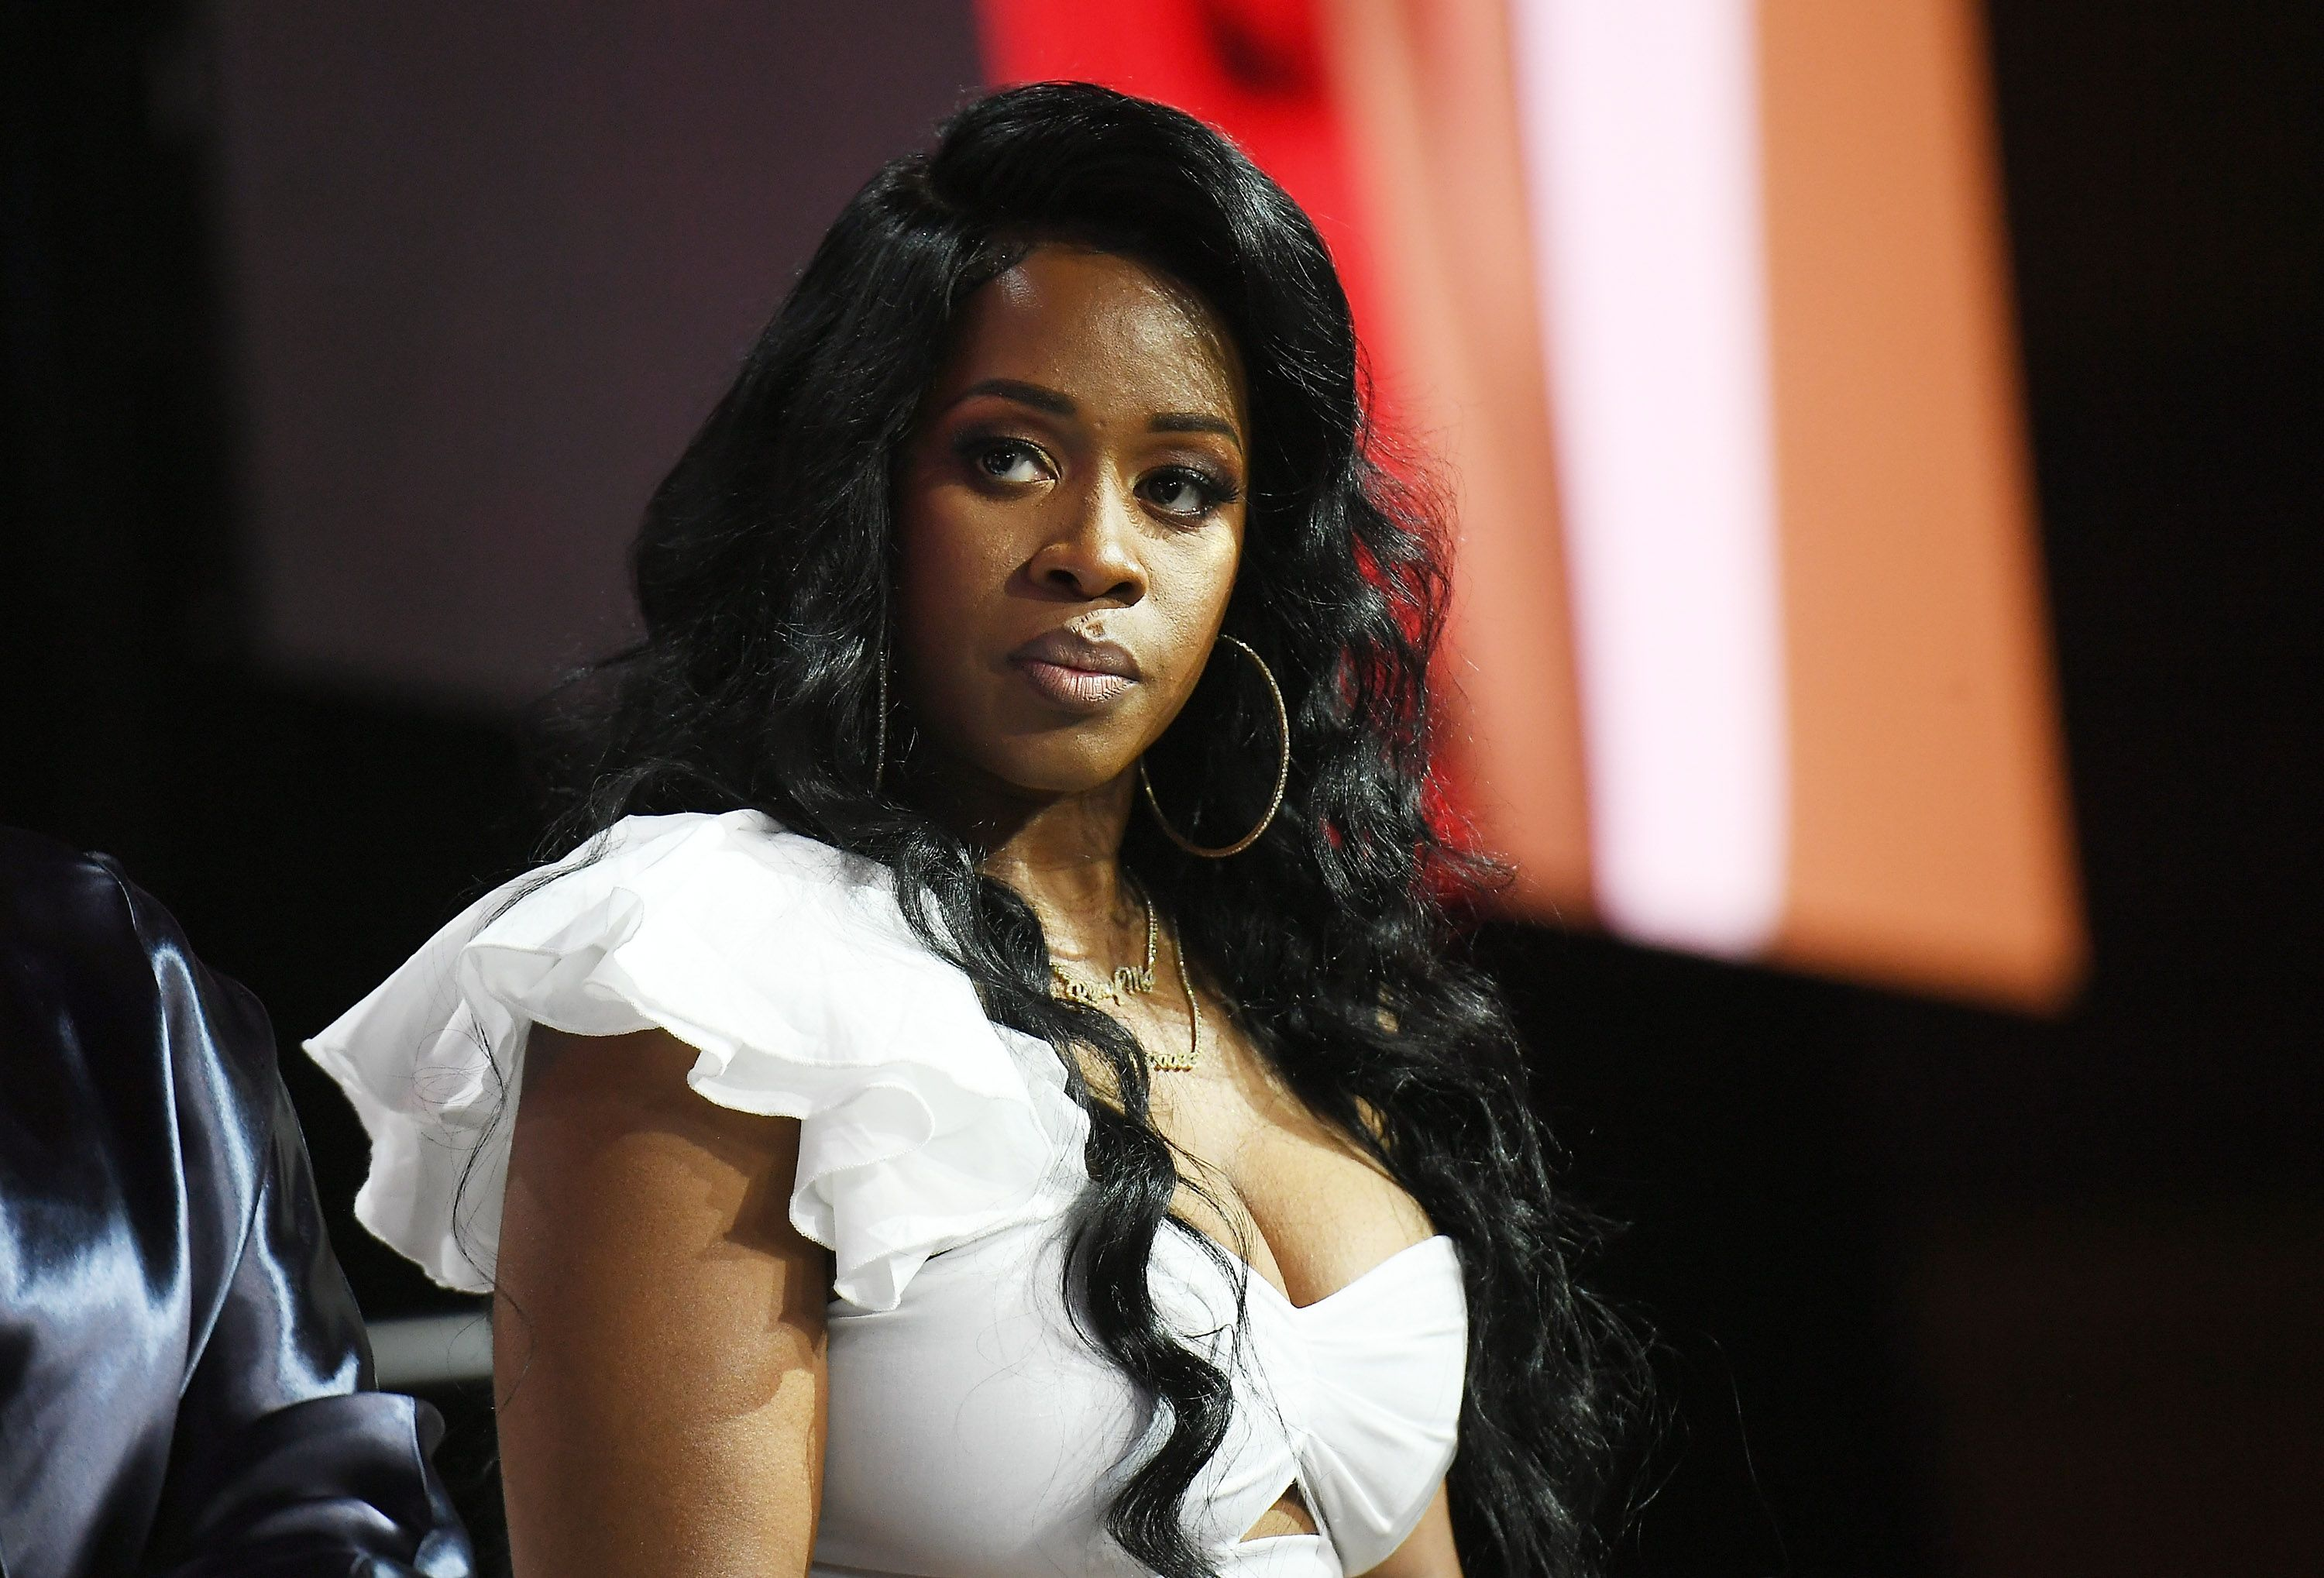 Remy Ma speaks onstage at the 2018 Essence Festival at Ernest N. Morial Convention Center on July 6, 2018 | Photo: Getty Images